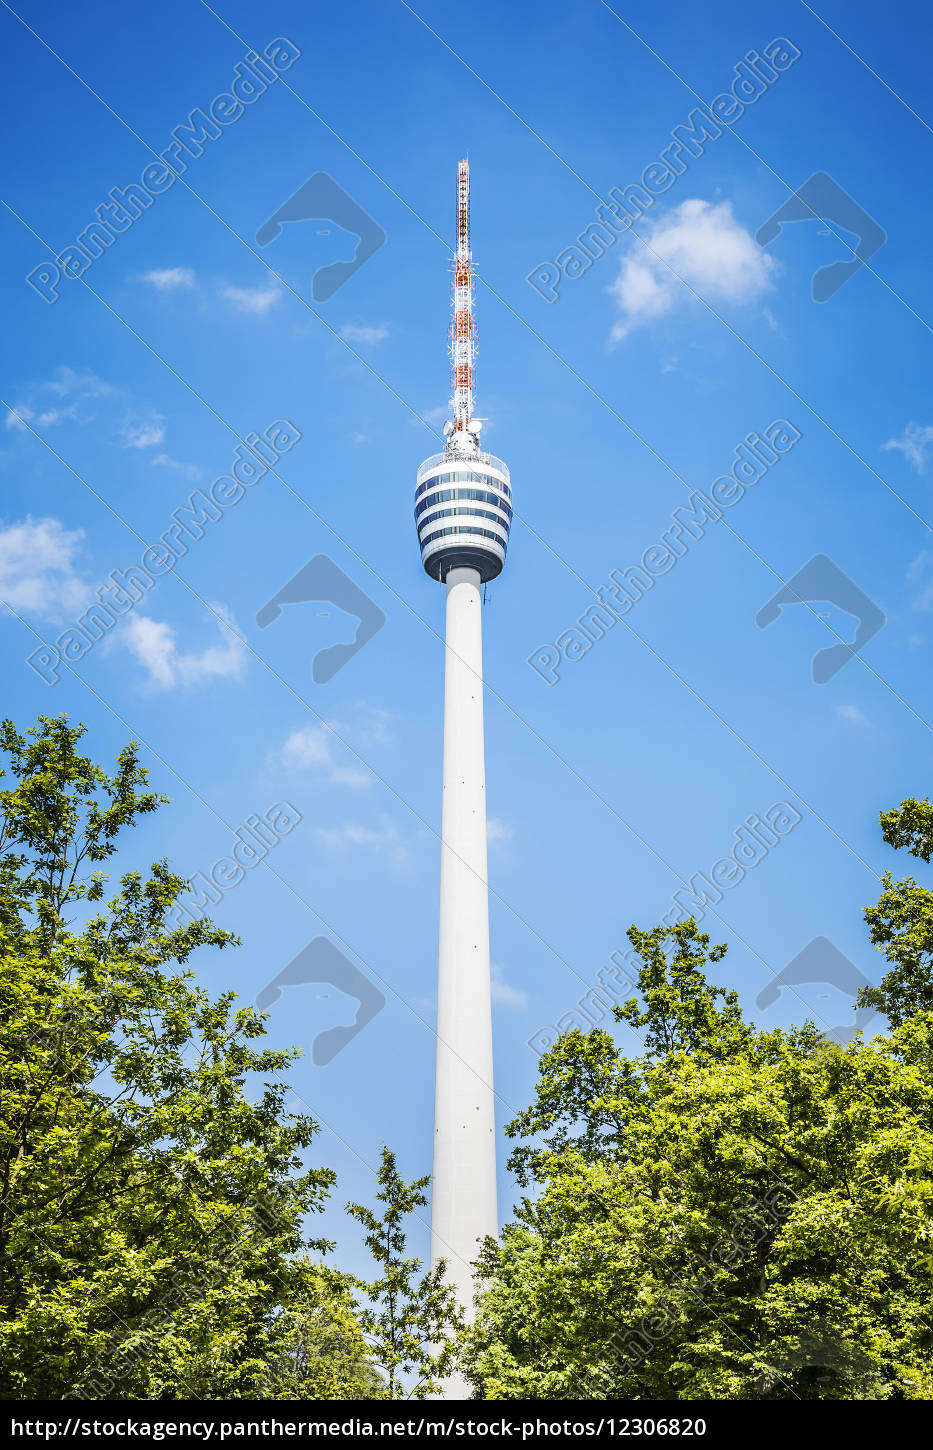 tv, broadcasting, tower - 12306820